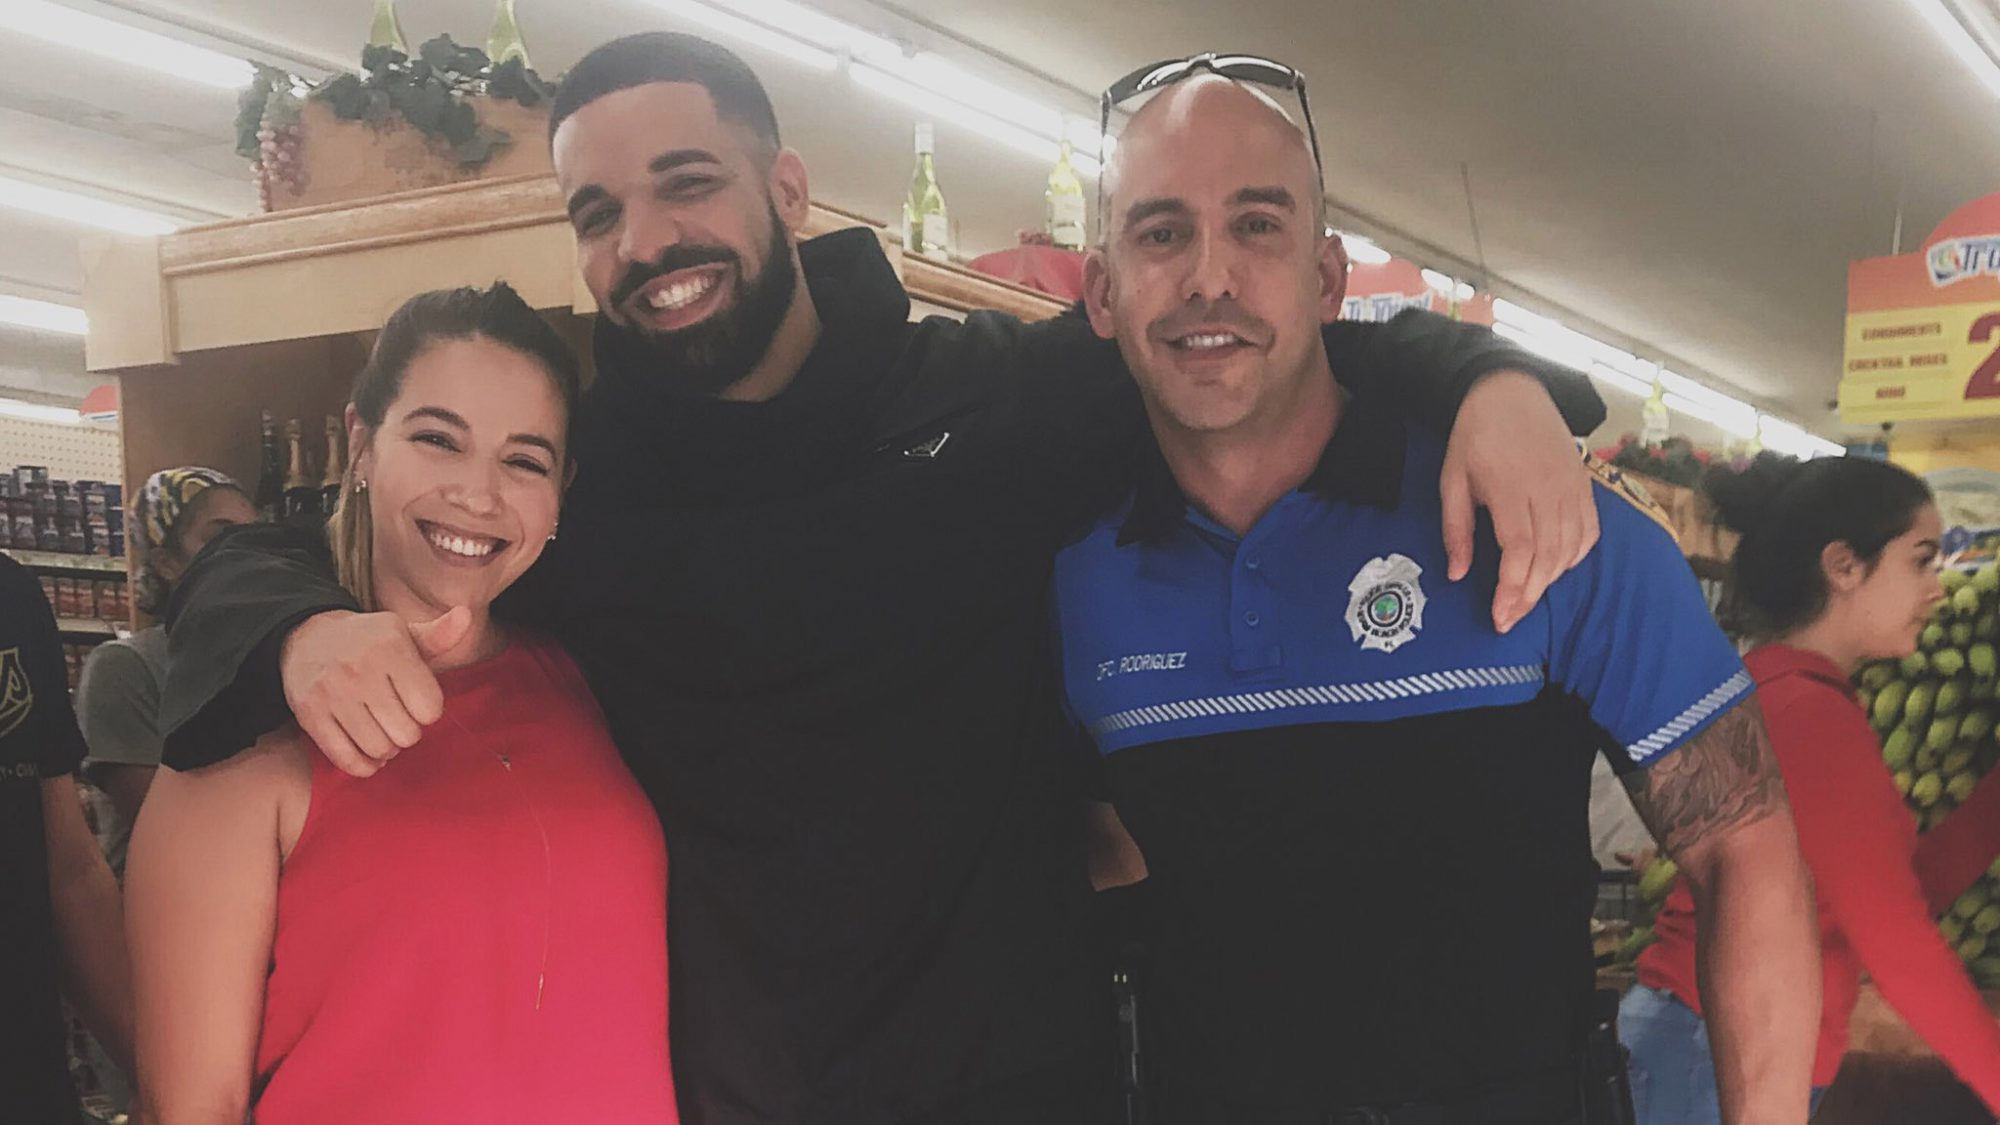 Drake Reportedly Bought $50,000 Worth of Groceries for Shoppers at a Miami Supermarket